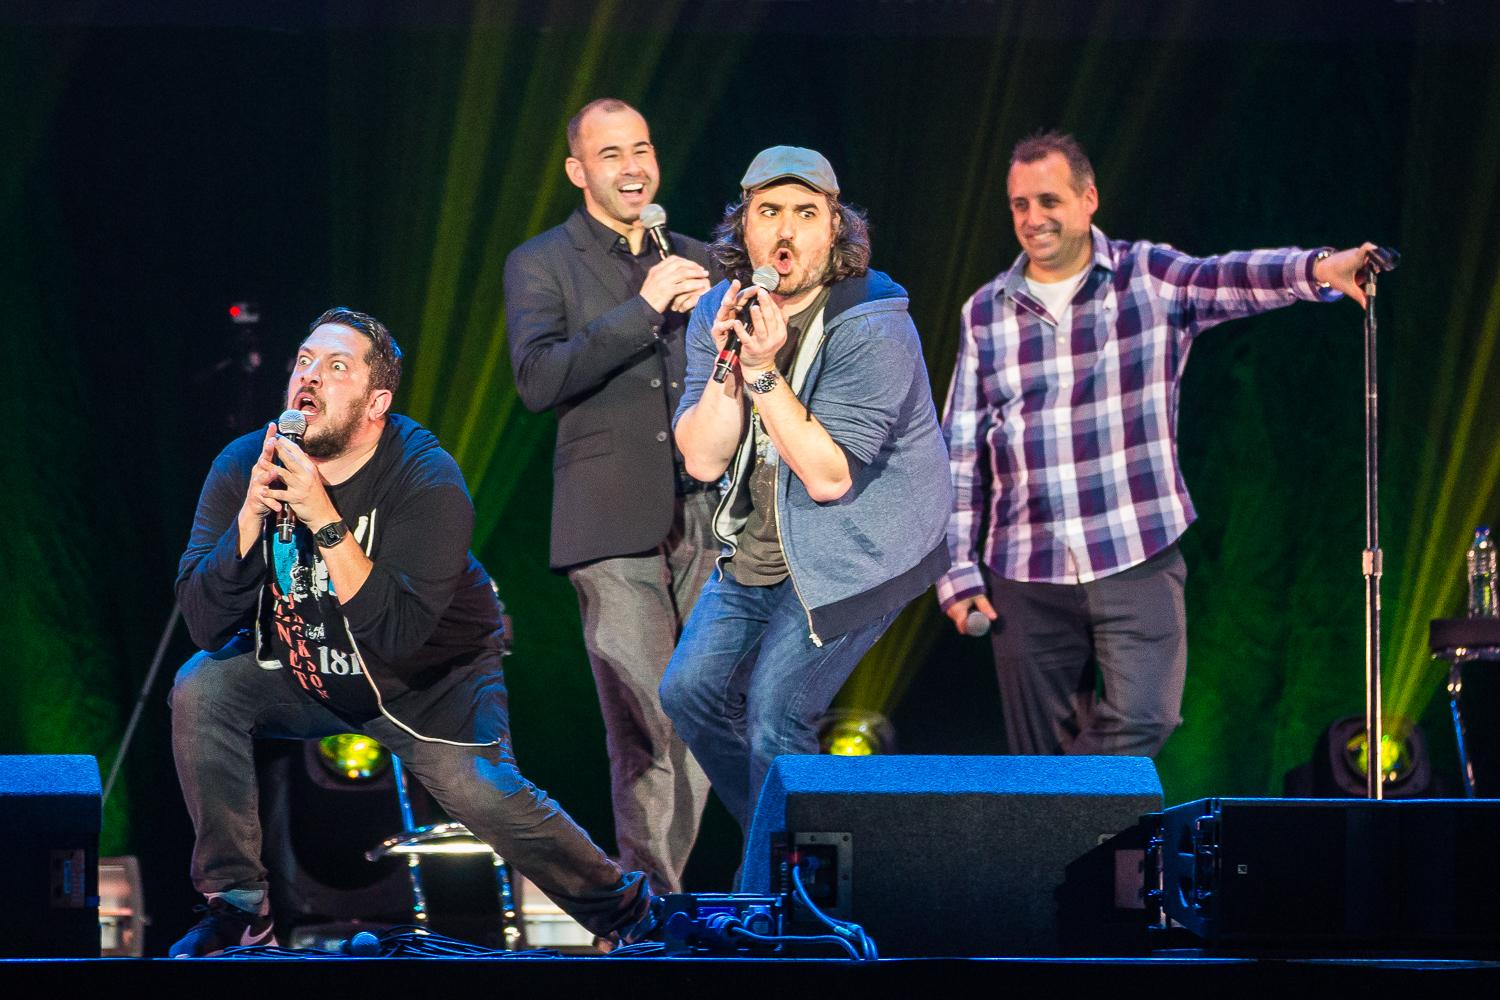 Impractical Jokers Live at Xfinity Center